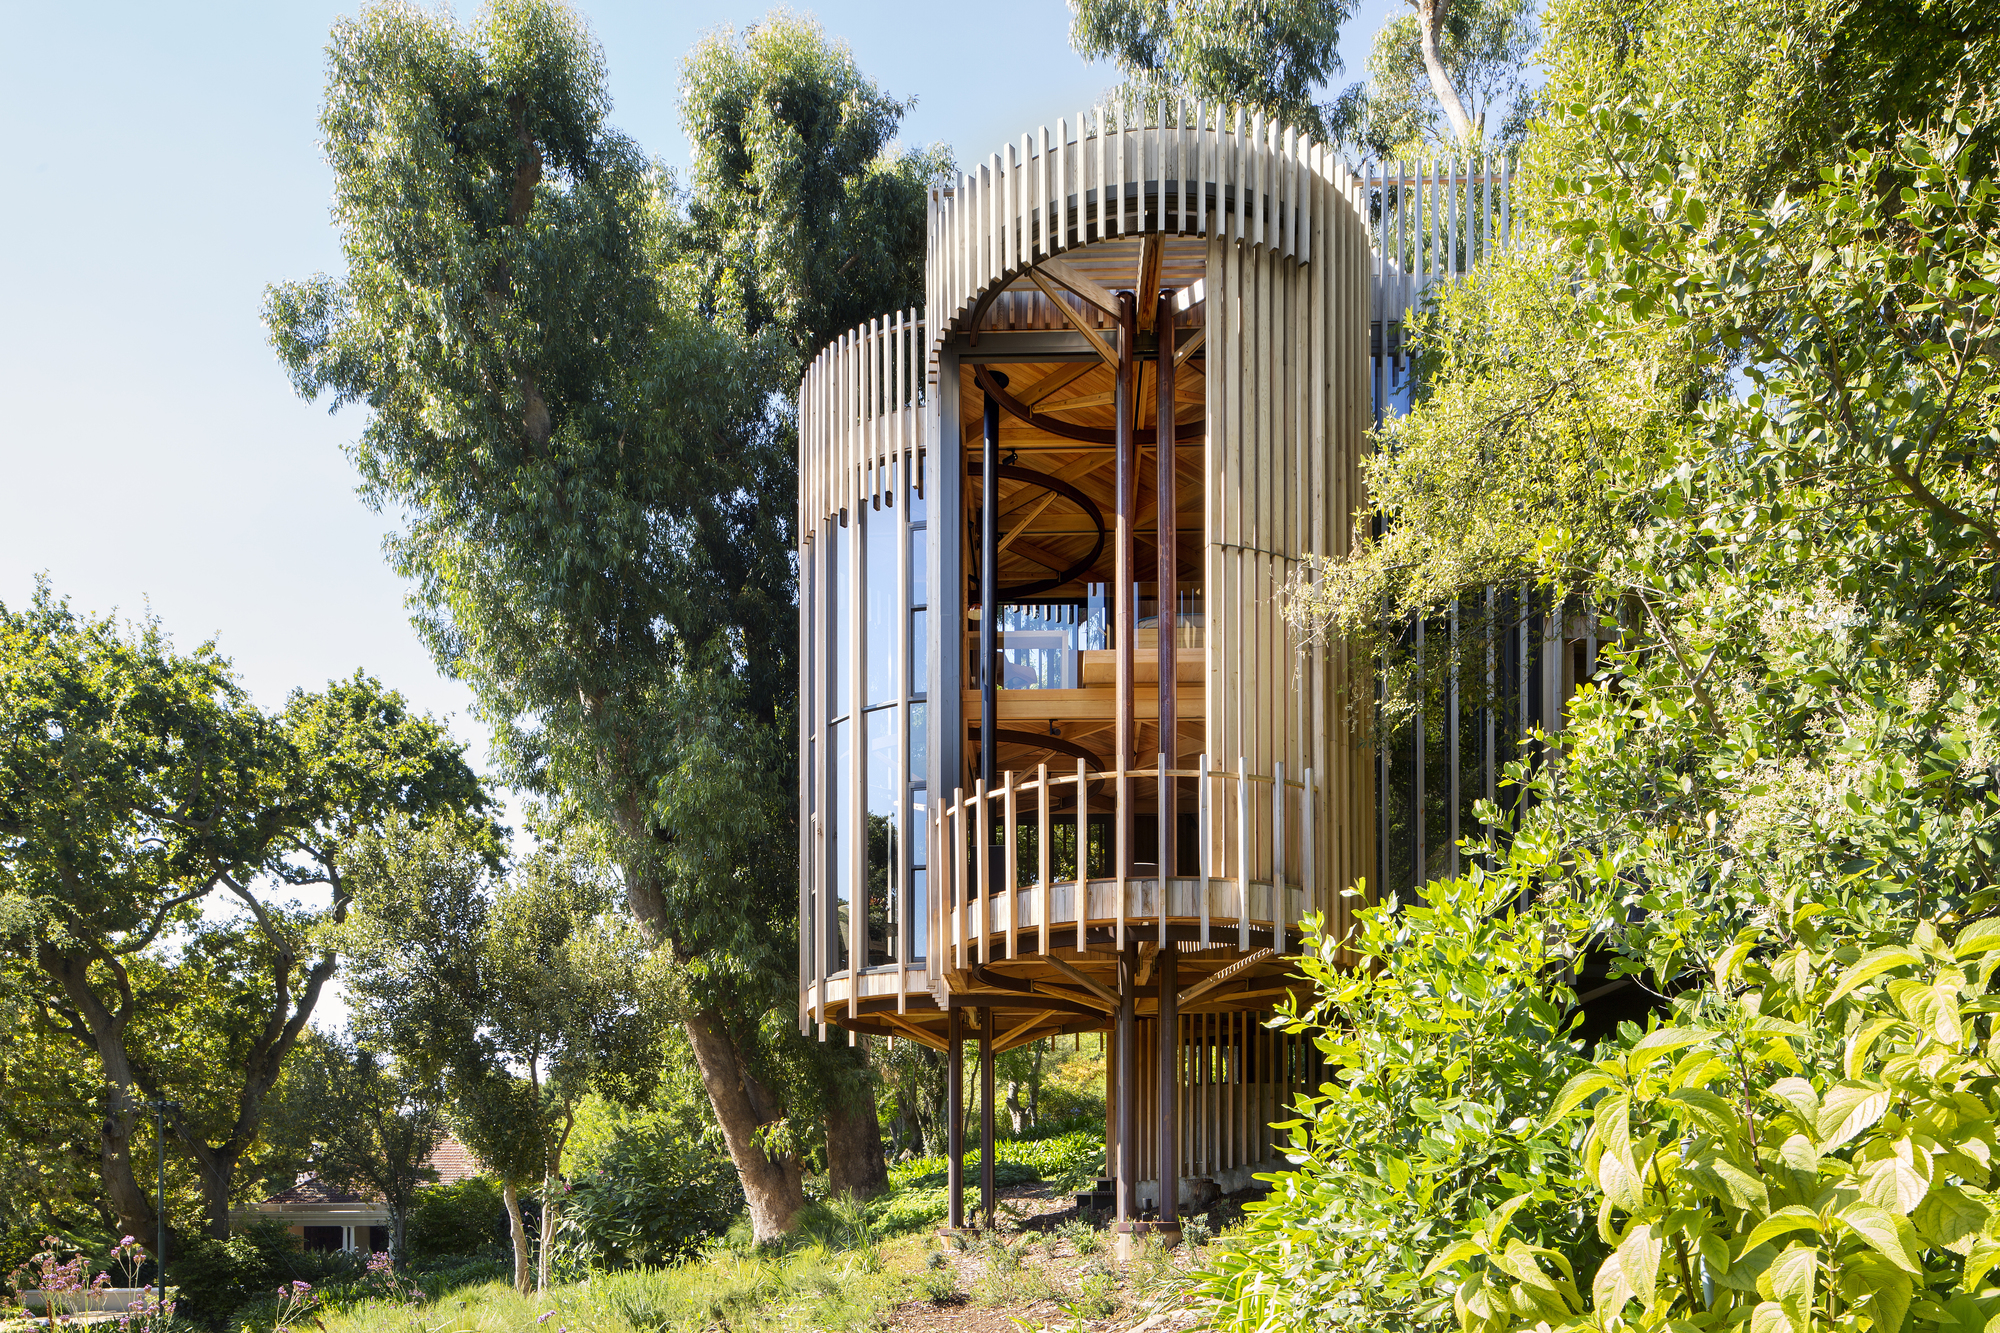 Malan Vorster Architecture Interior Design | Office | ArchDaily on handmade tree house, design tree house, color tree house, ralph lauren tree house, metal tree house, in door tree house, art tree house, women tree house, contemporary tree house, classic tree house, construction tree house, custom tree house, model tree house, deluxe tree house, home tree house, ty pennington tree house, gold tree house, faux tree house, retro tree house, luxury tree house,